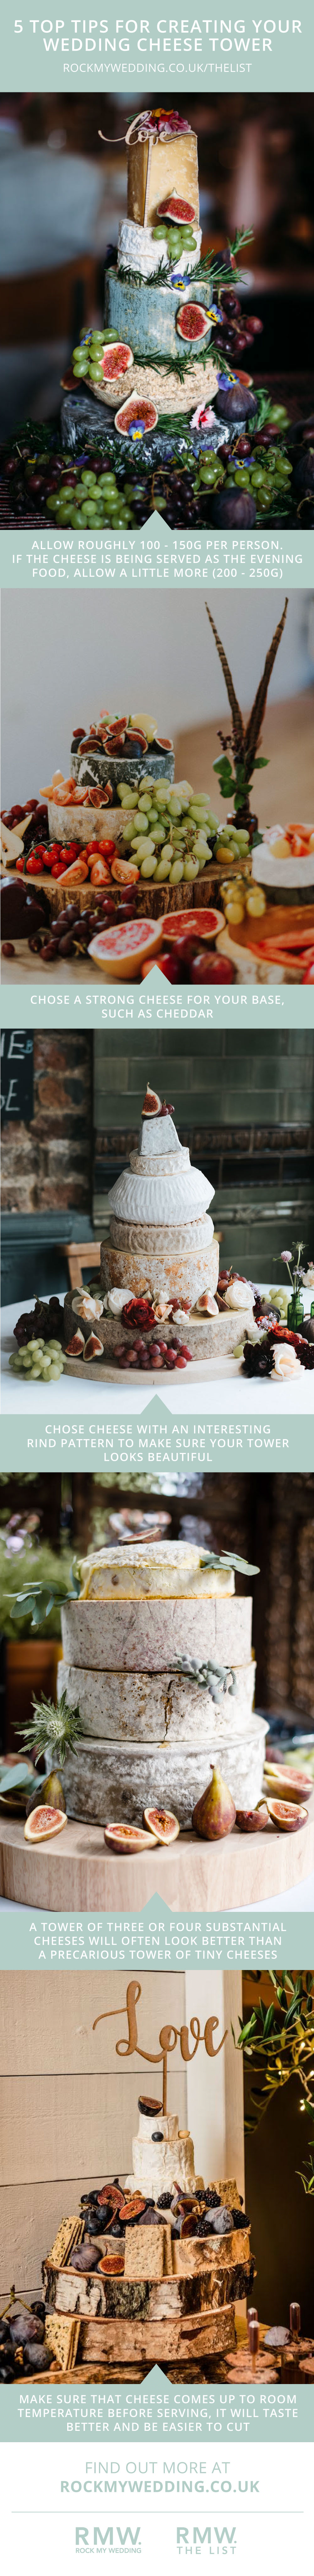 Five Tip Tops For Creating A Wedding Cheese Tower